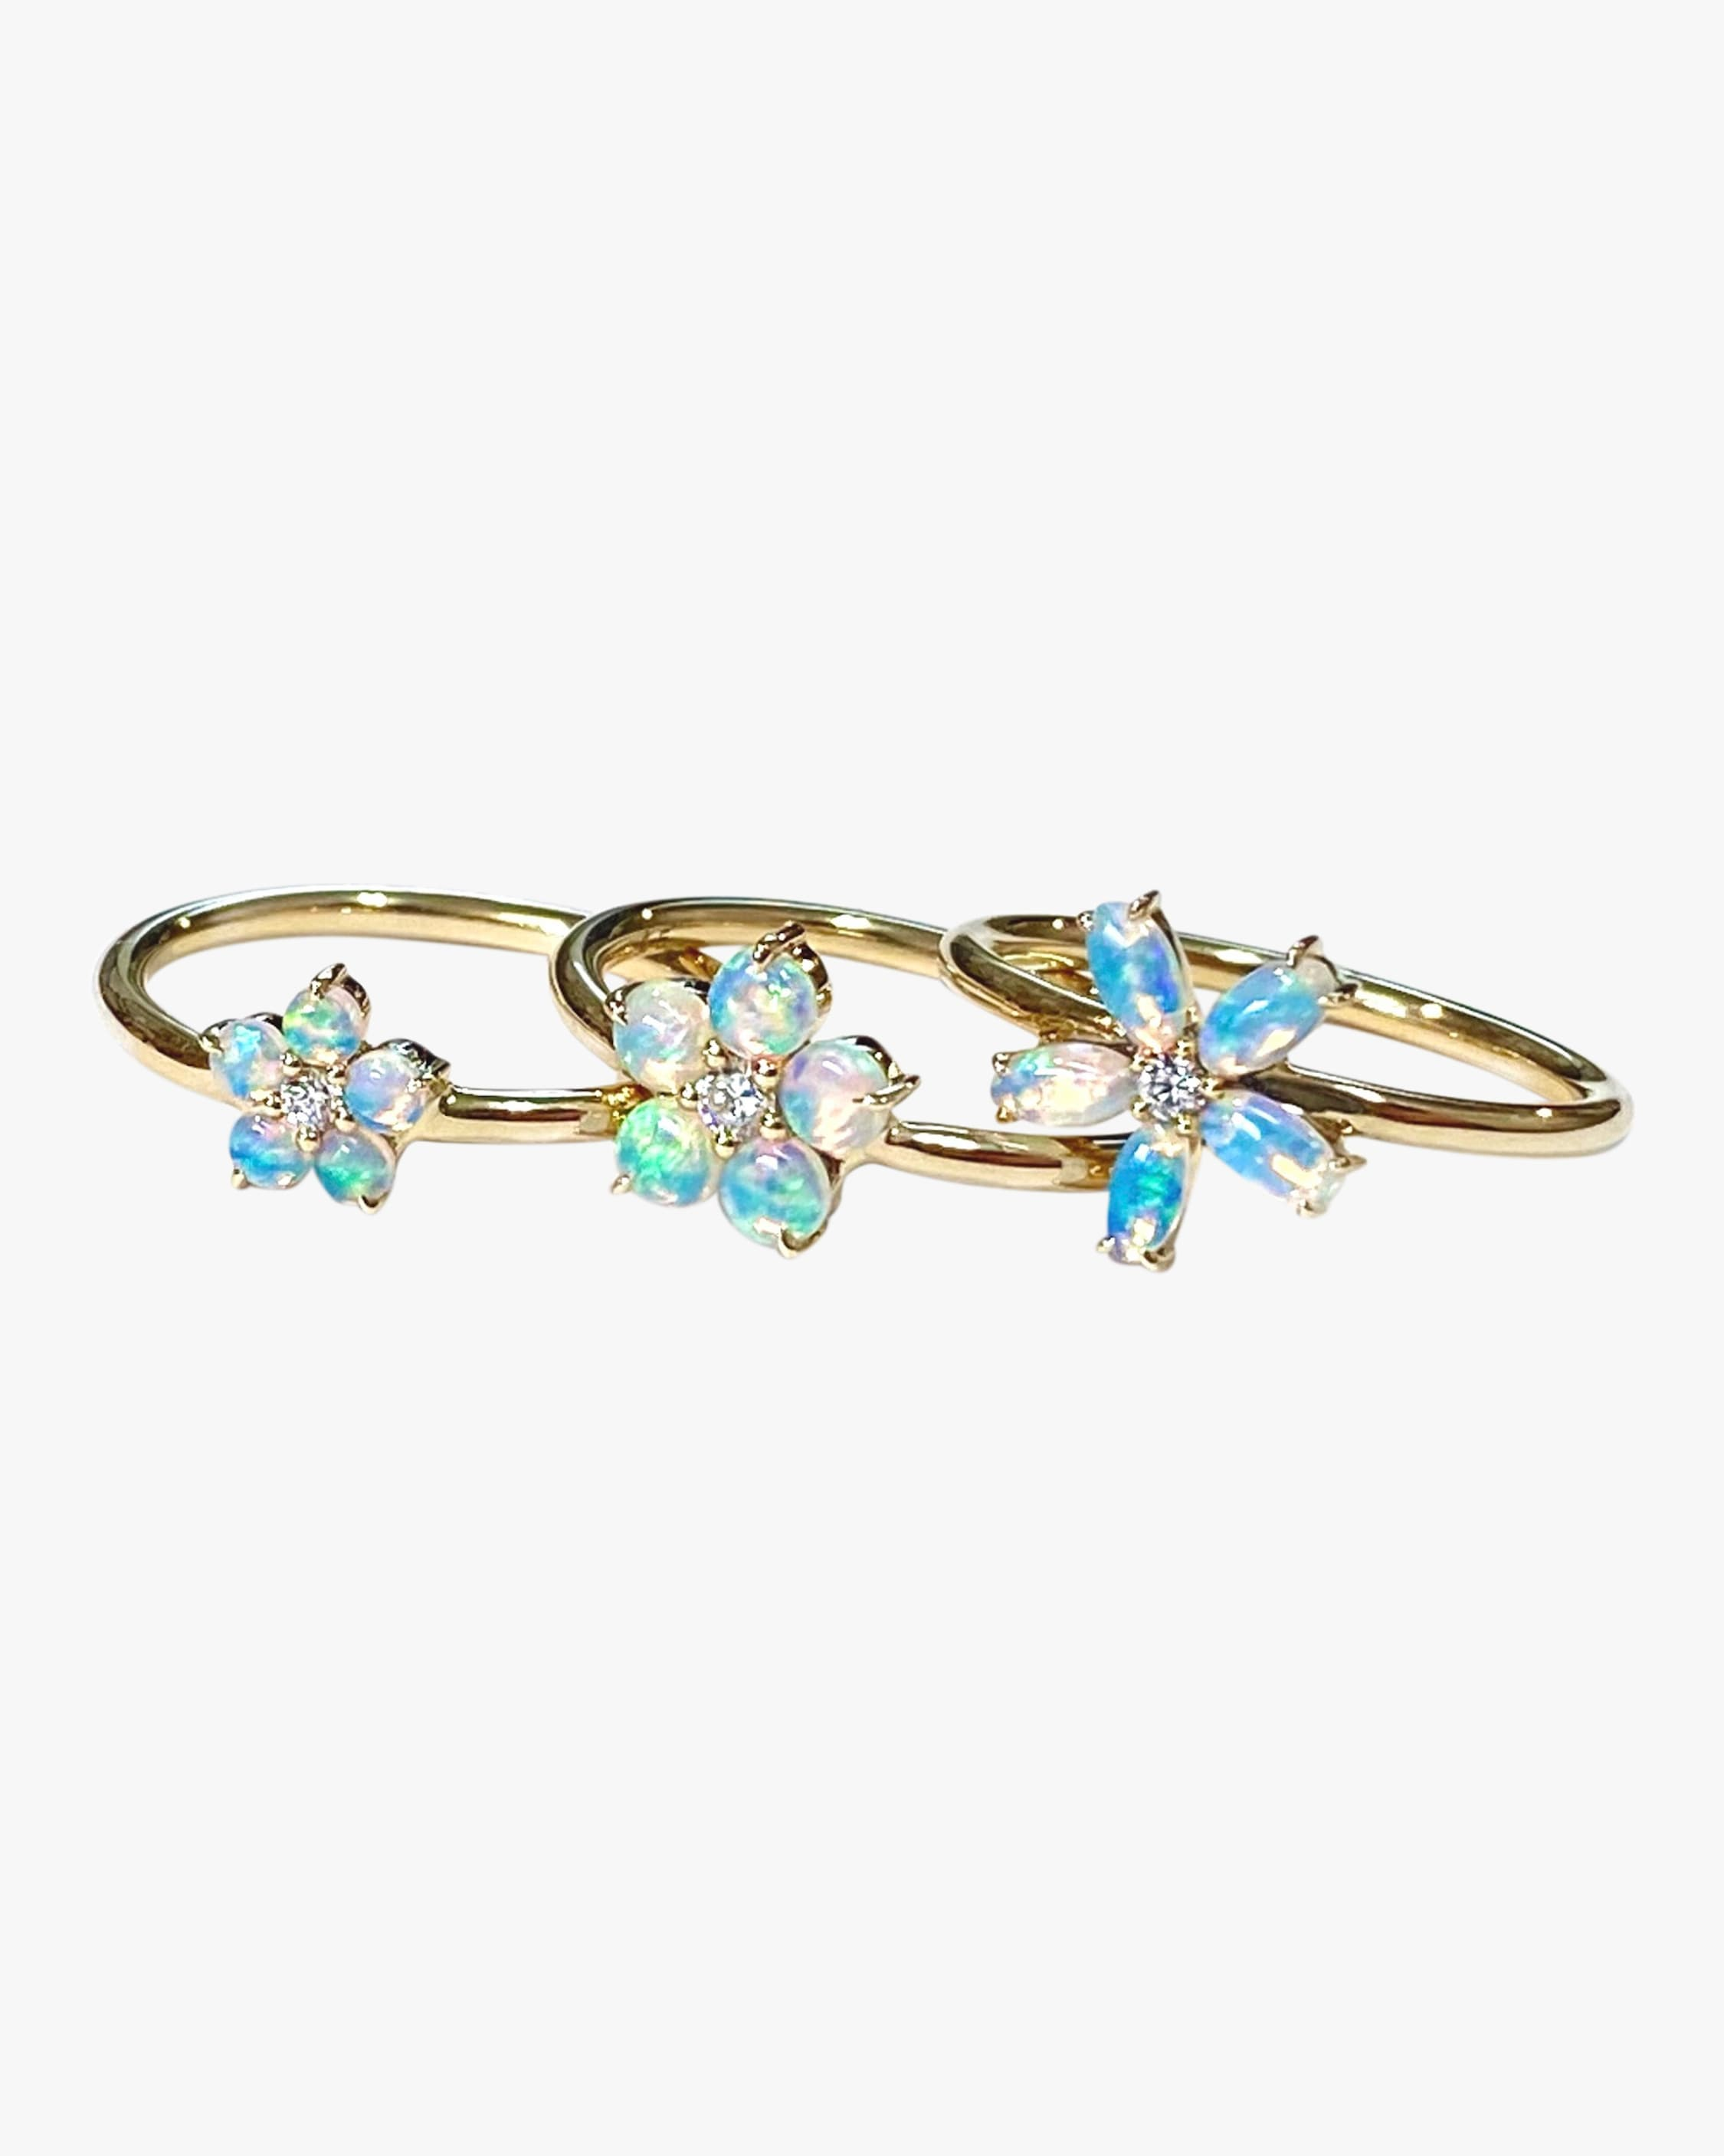 Jane Taylor Rings LIMITED EDITION OPAL & DIAMOND FLOWER RING